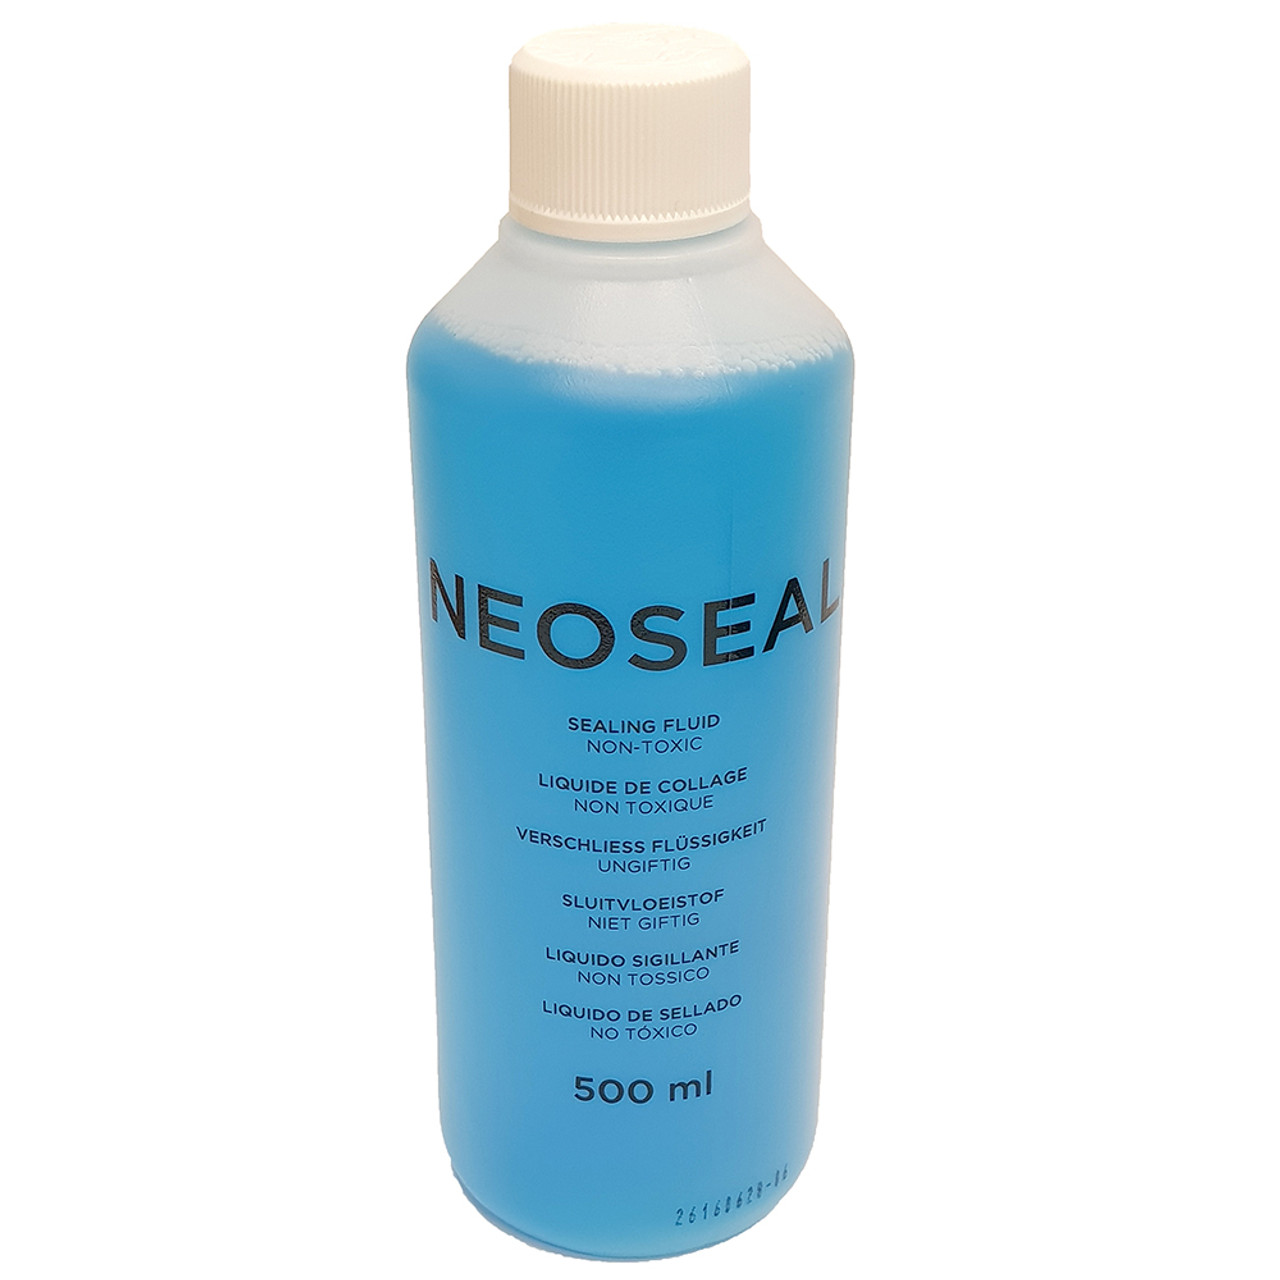 NEOPOST / QUADIENT Neoseal Sealing Solution - 500ml for Folder Inserters